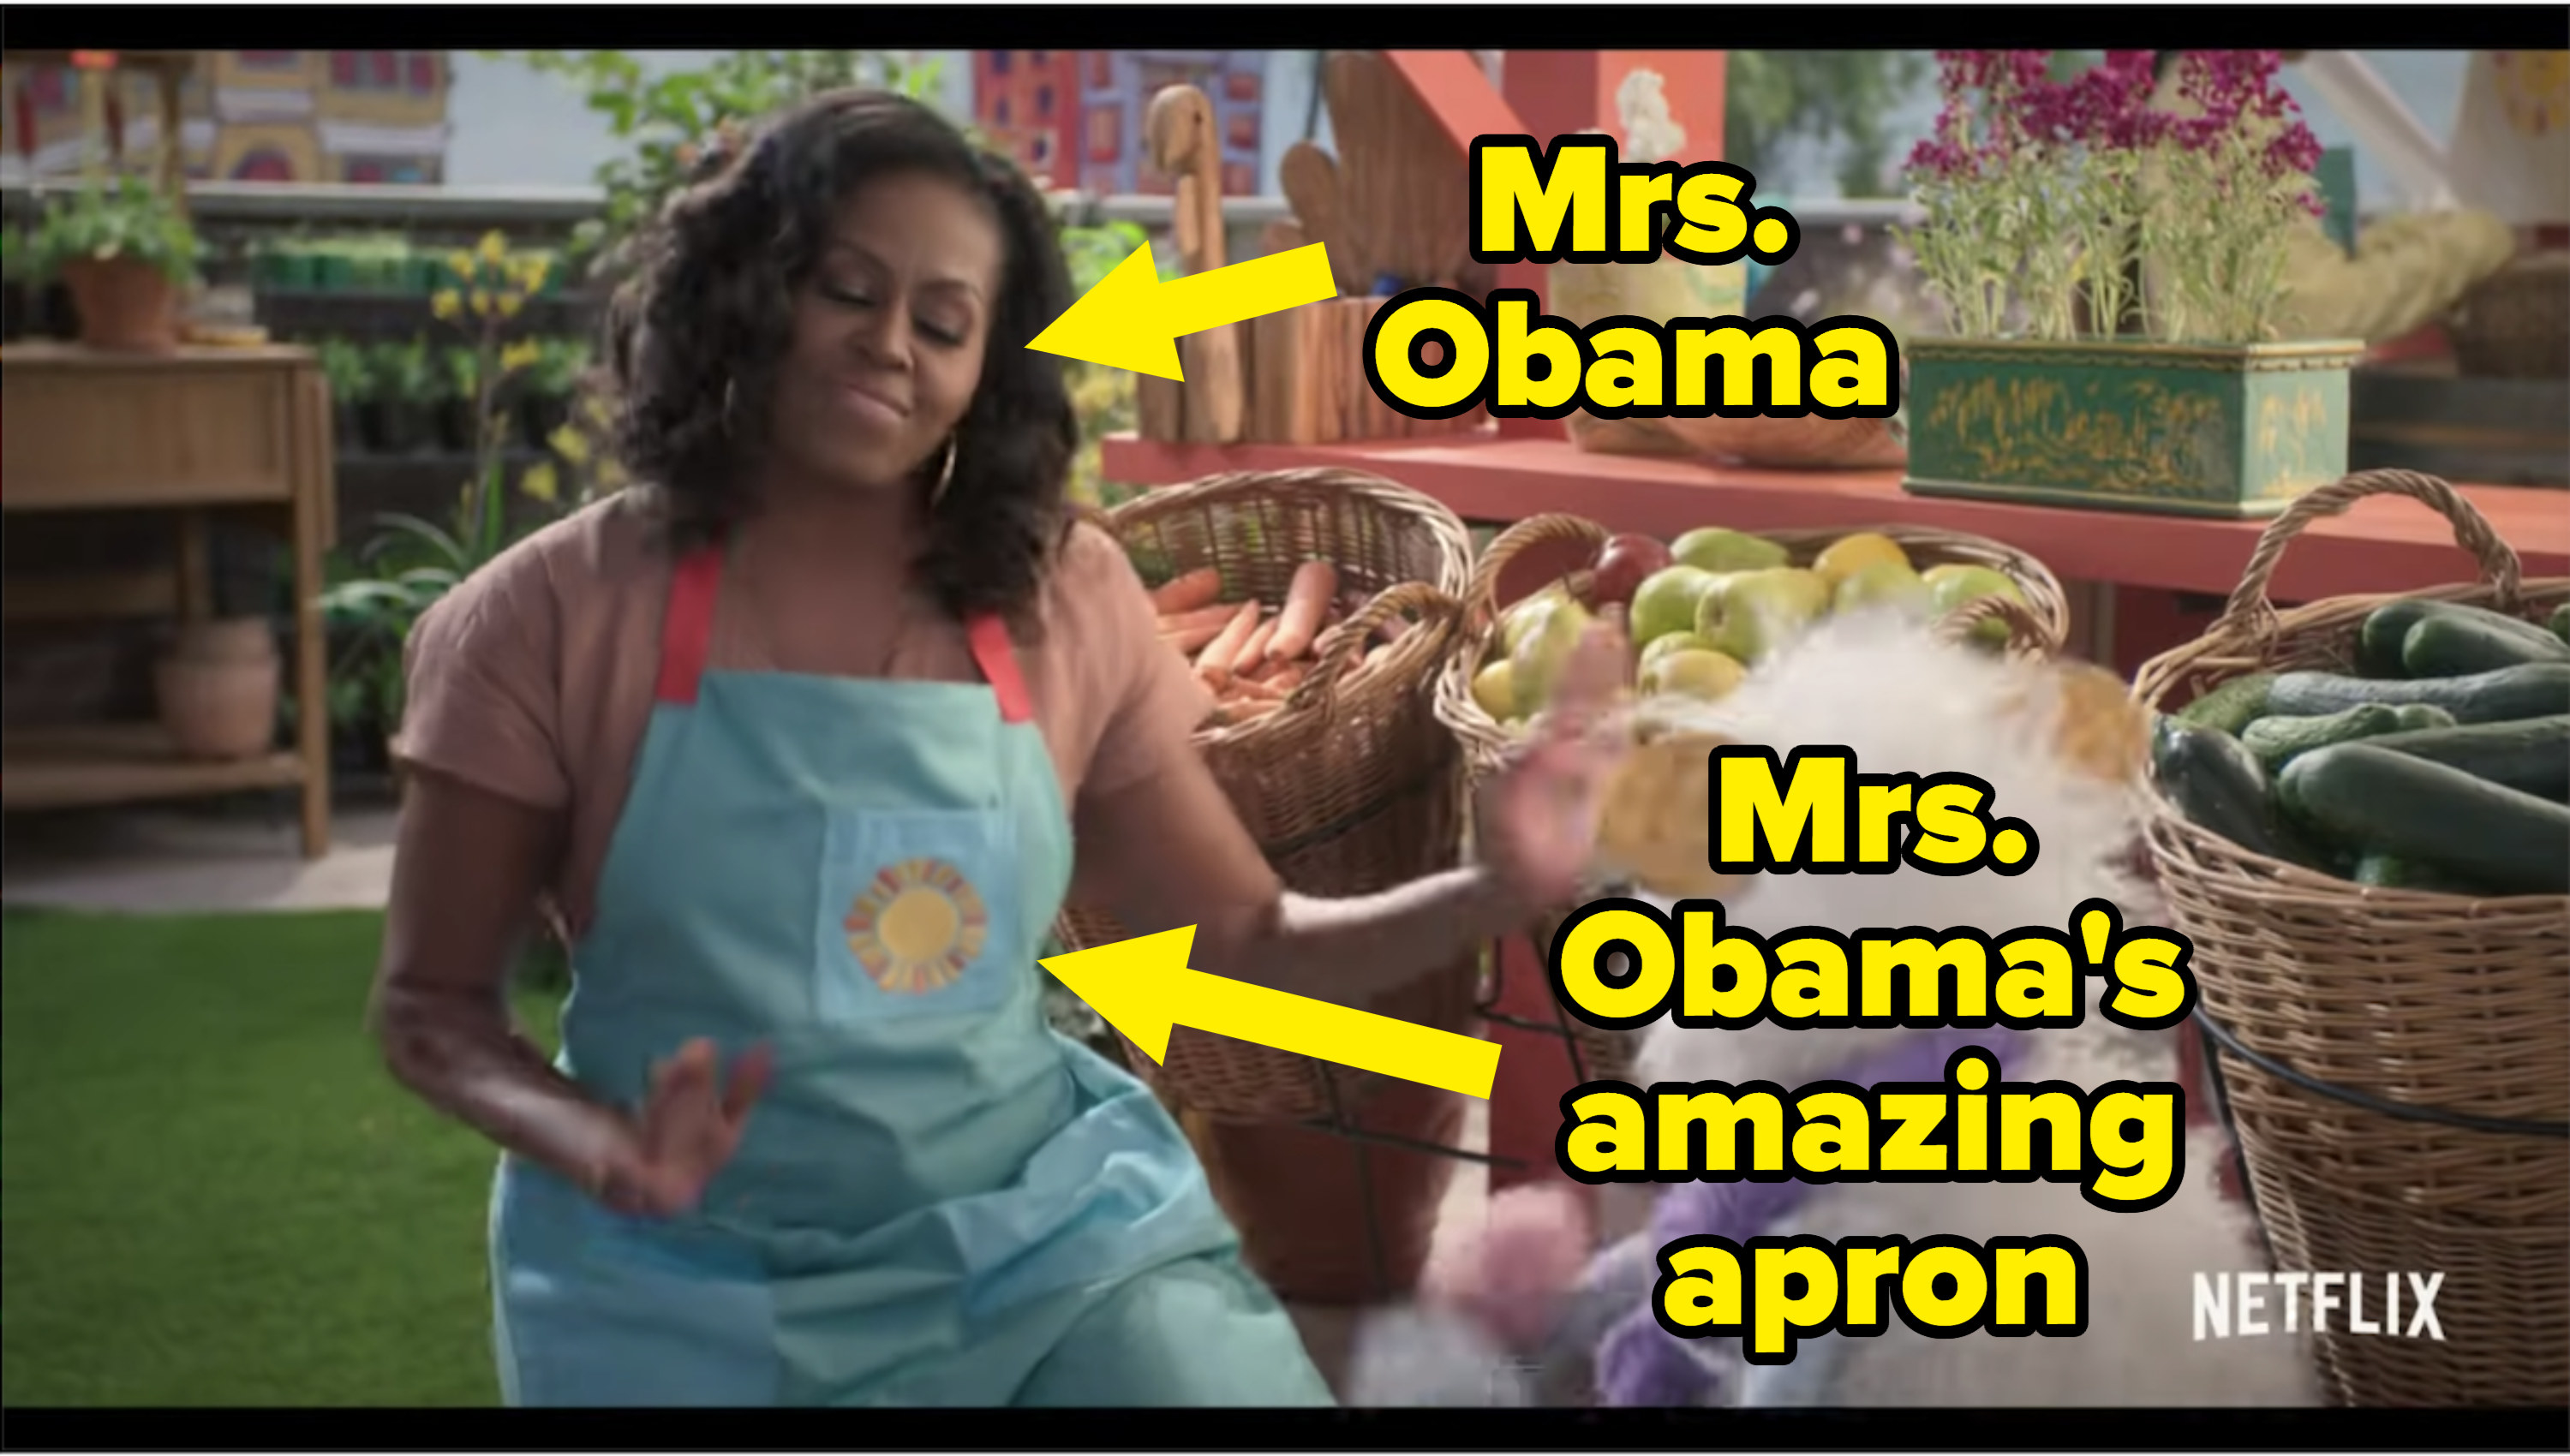 Michelle Obama on the grocery store rooftop